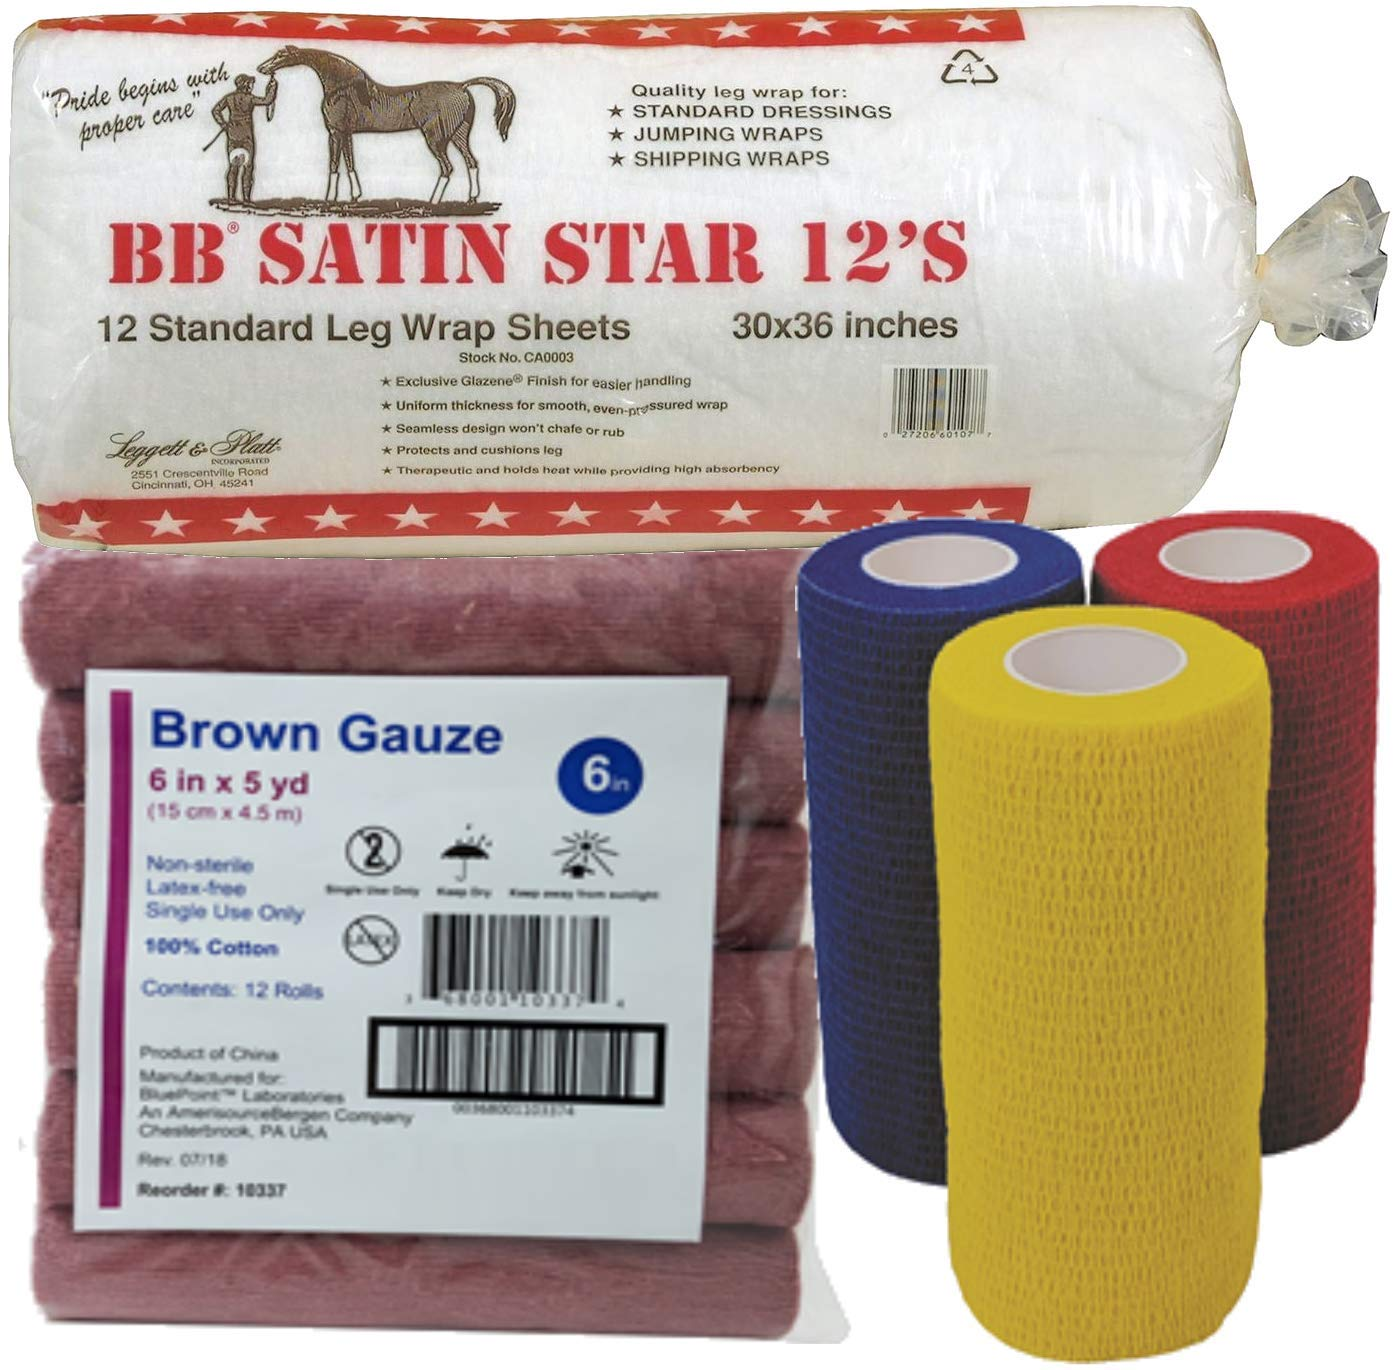 Horse Leg Wraps Wound Care VALUE PACK BB Star Cotton Vet Wrap Sheets, 30'' x 36'' 12'S and Cohesive Vet Wrap (Red/Blue/Yellow), 4'' x 5yd with Brown Gauze, Latex-Free, 6'' x 5yd Equine Horse First Aid Kit by Leggett and Platt